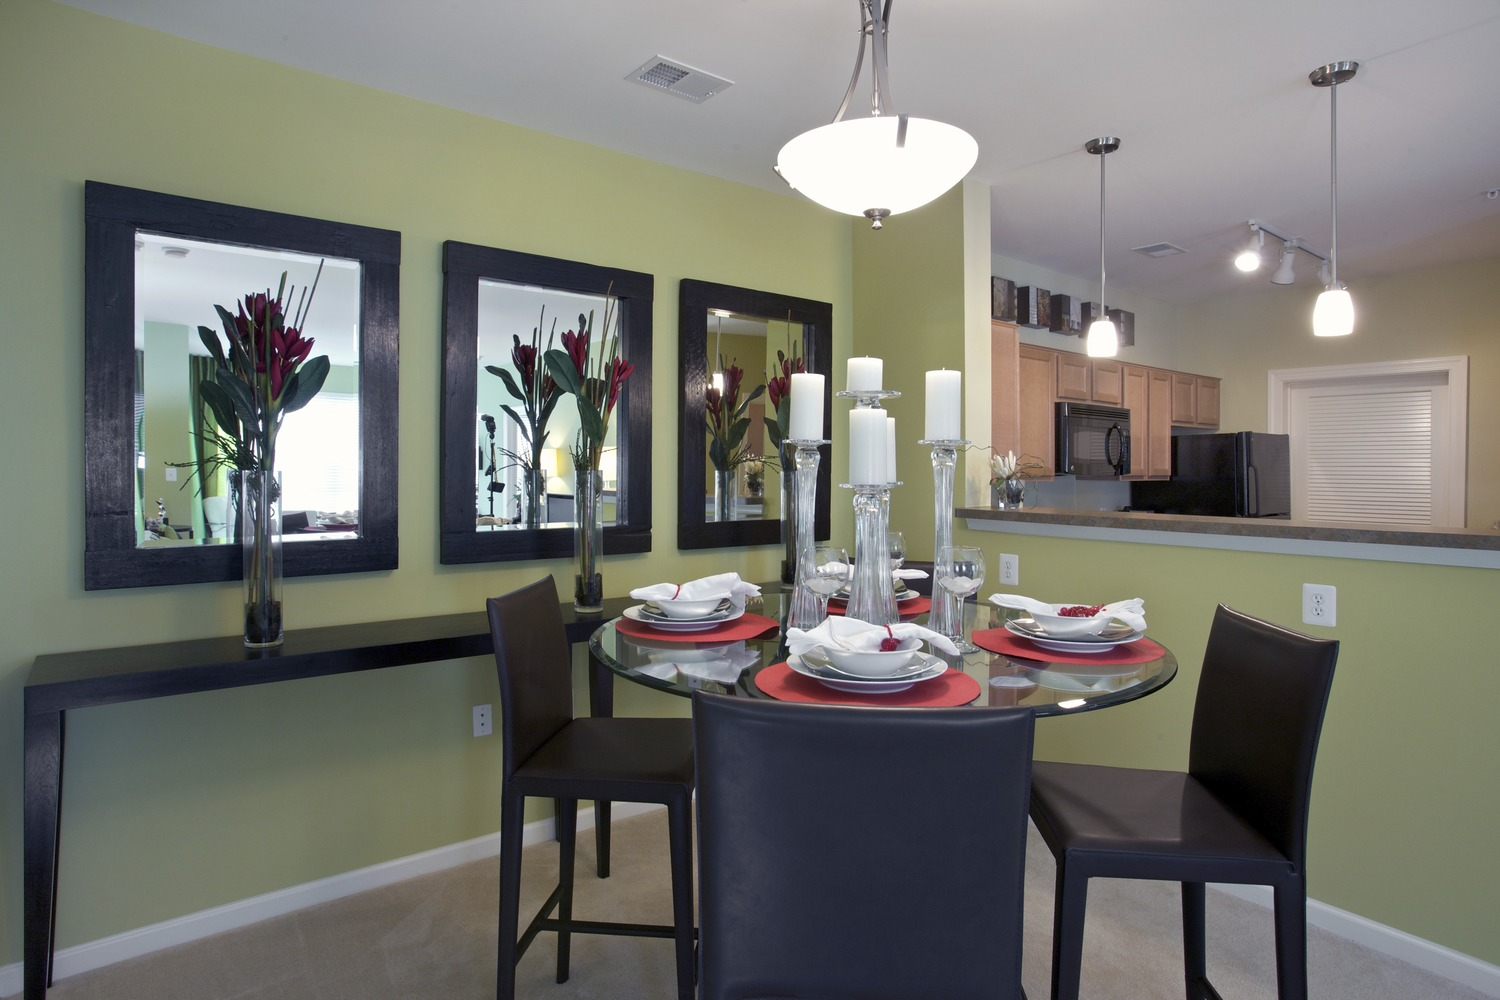 CBG builds The Elms at Stoney Run Village, a 390 Apartment Homes in Hanover, MD - Image #4